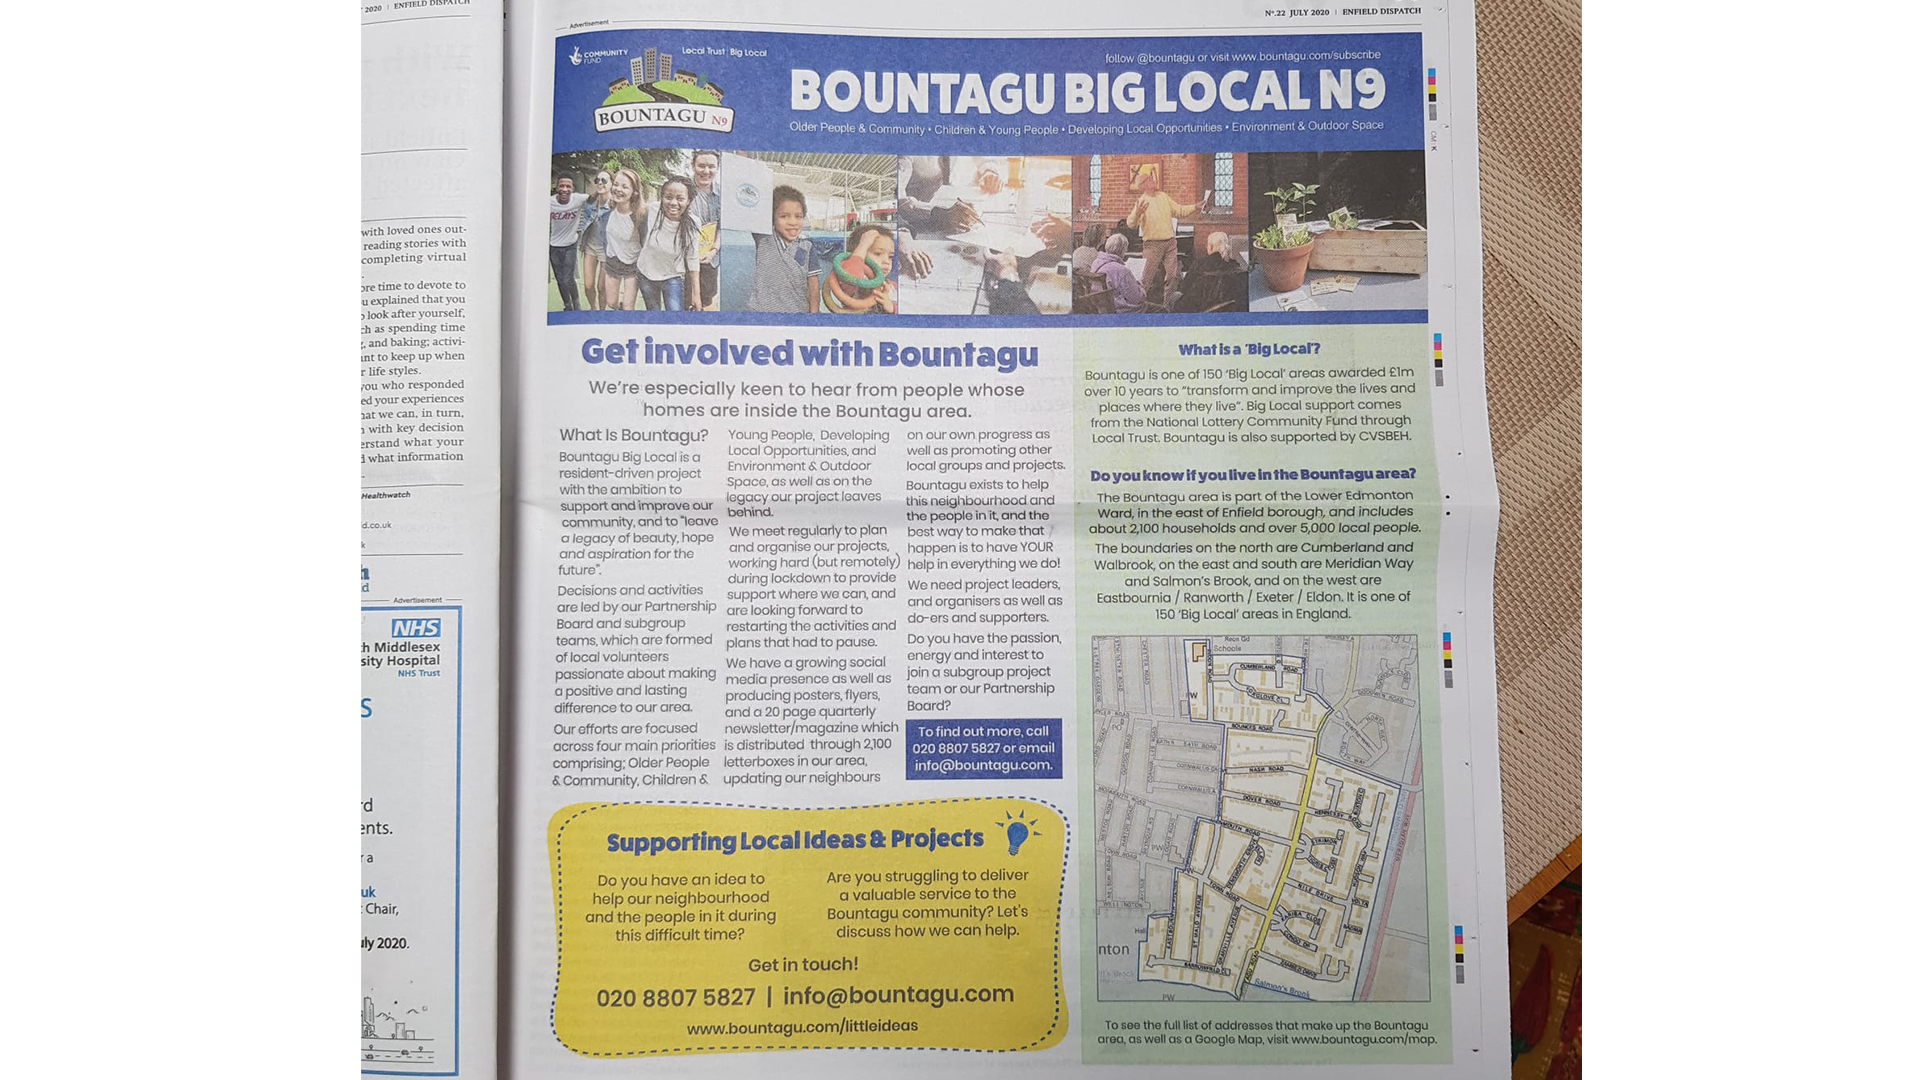 Bountagu Big Local in the News